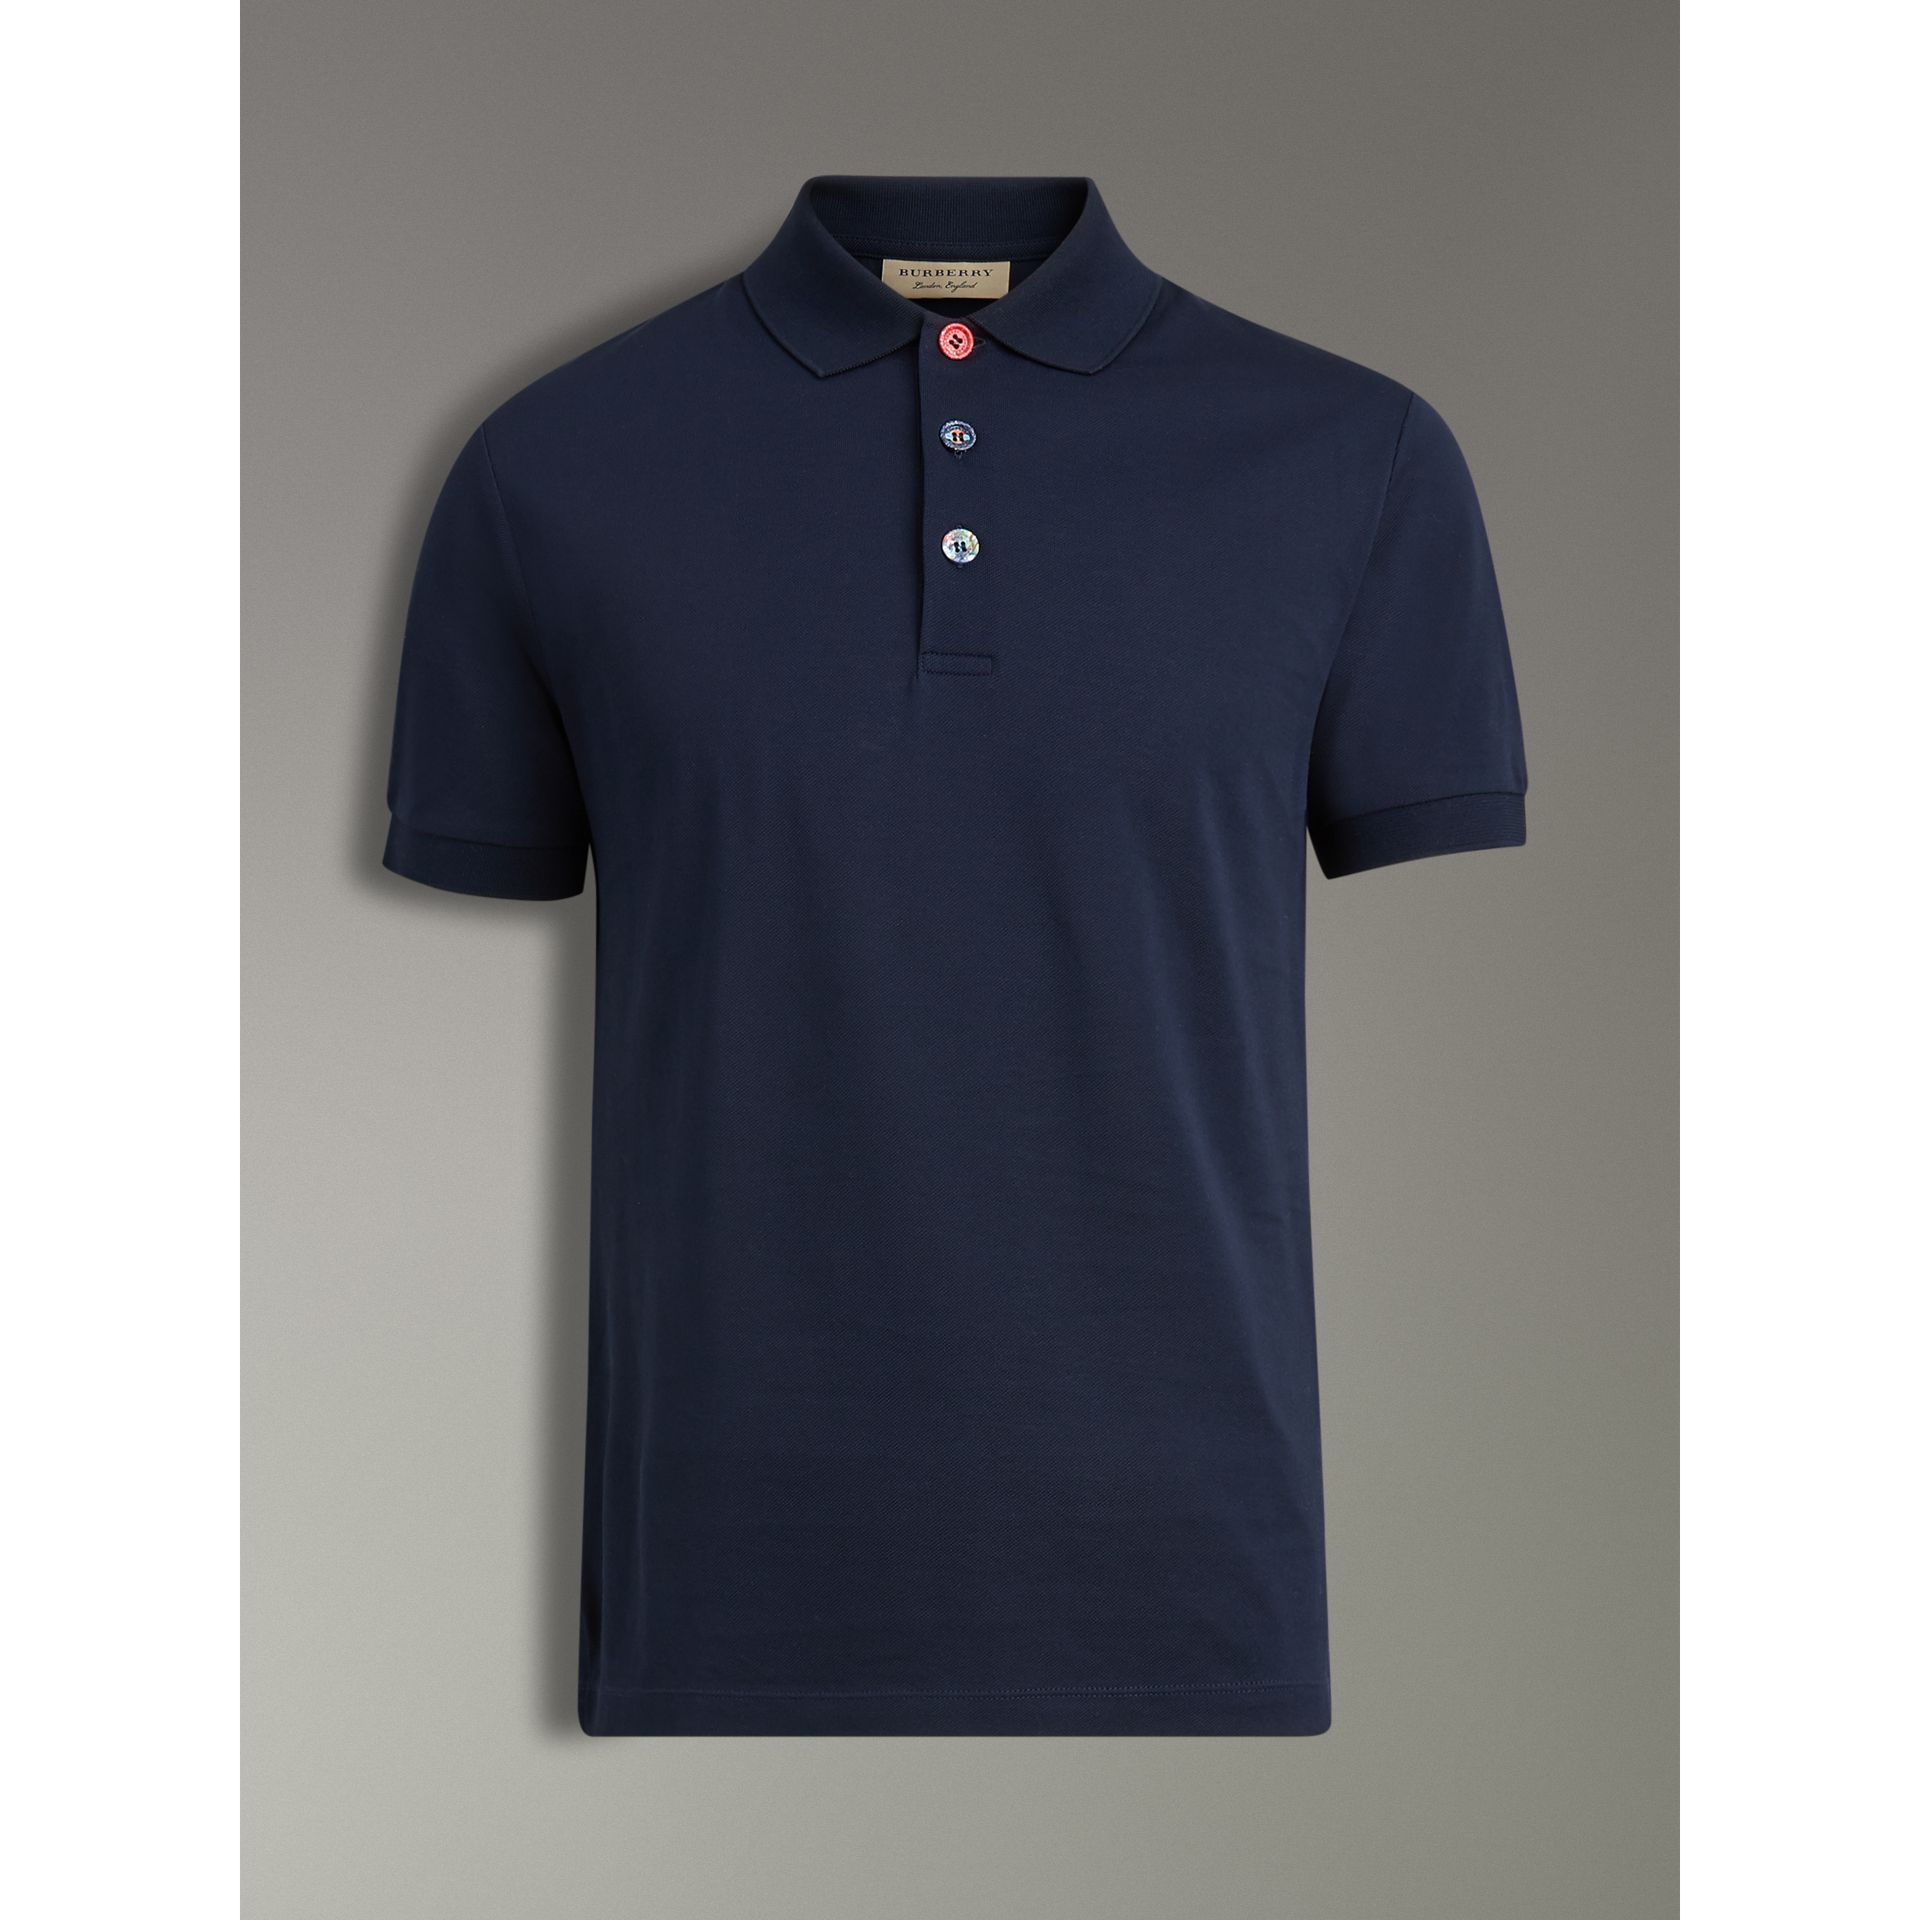 Painted Button Cotton Piqué Polo Shirt in Navy - Men | Burberry Australia - gallery image 3